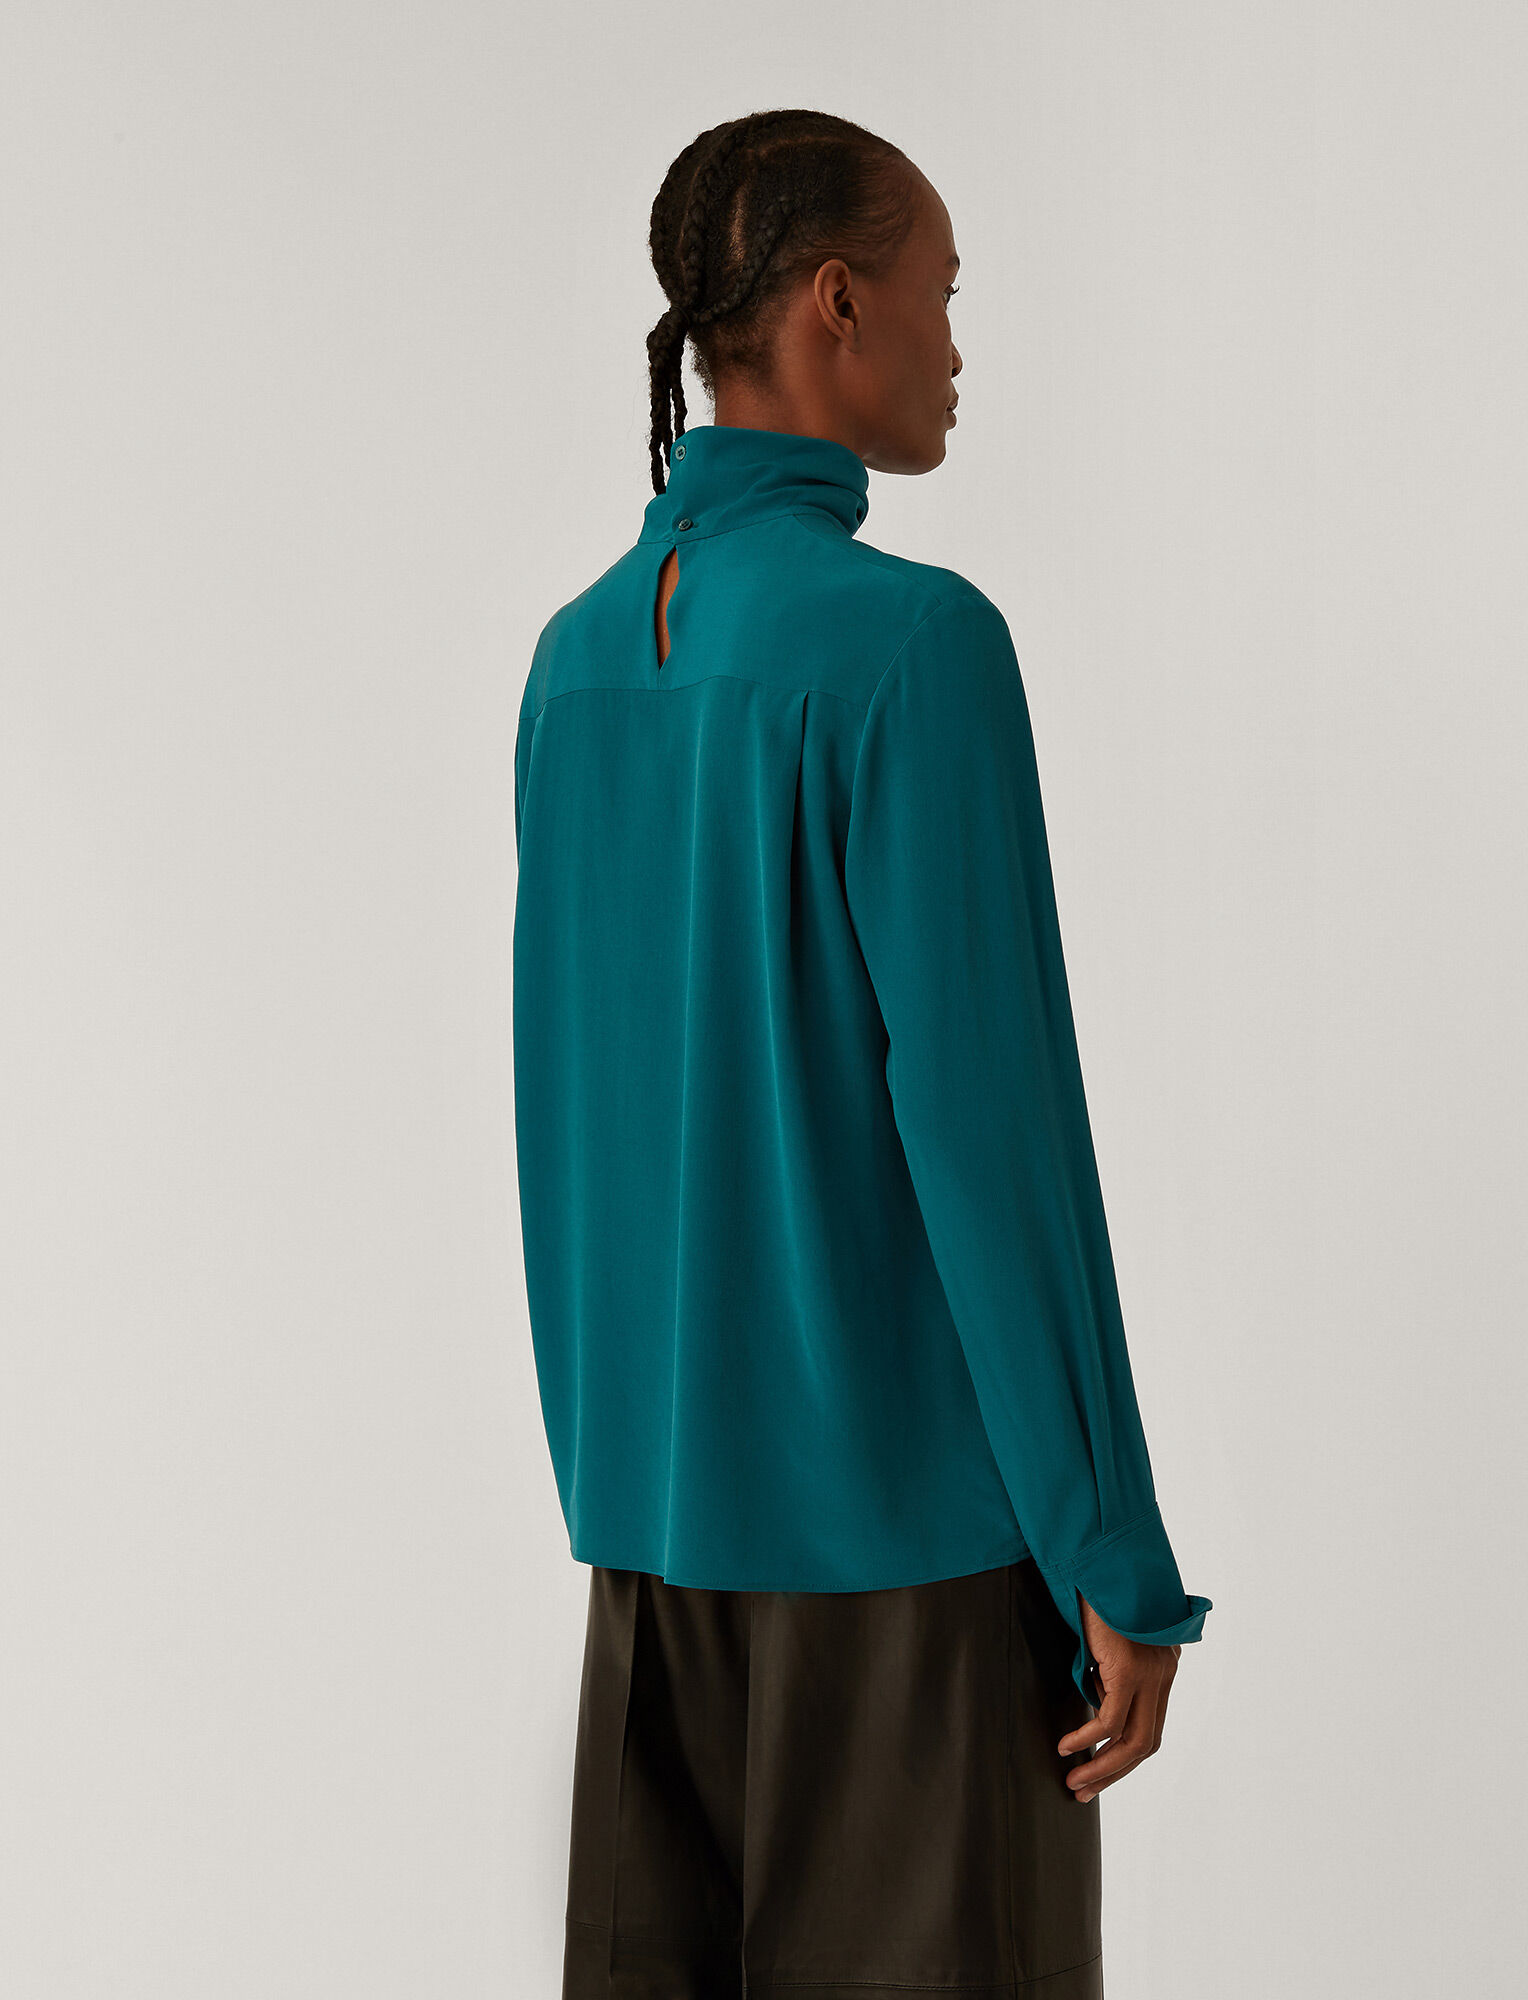 Joseph, Biva Crepe De Chine Blouse, in Teal